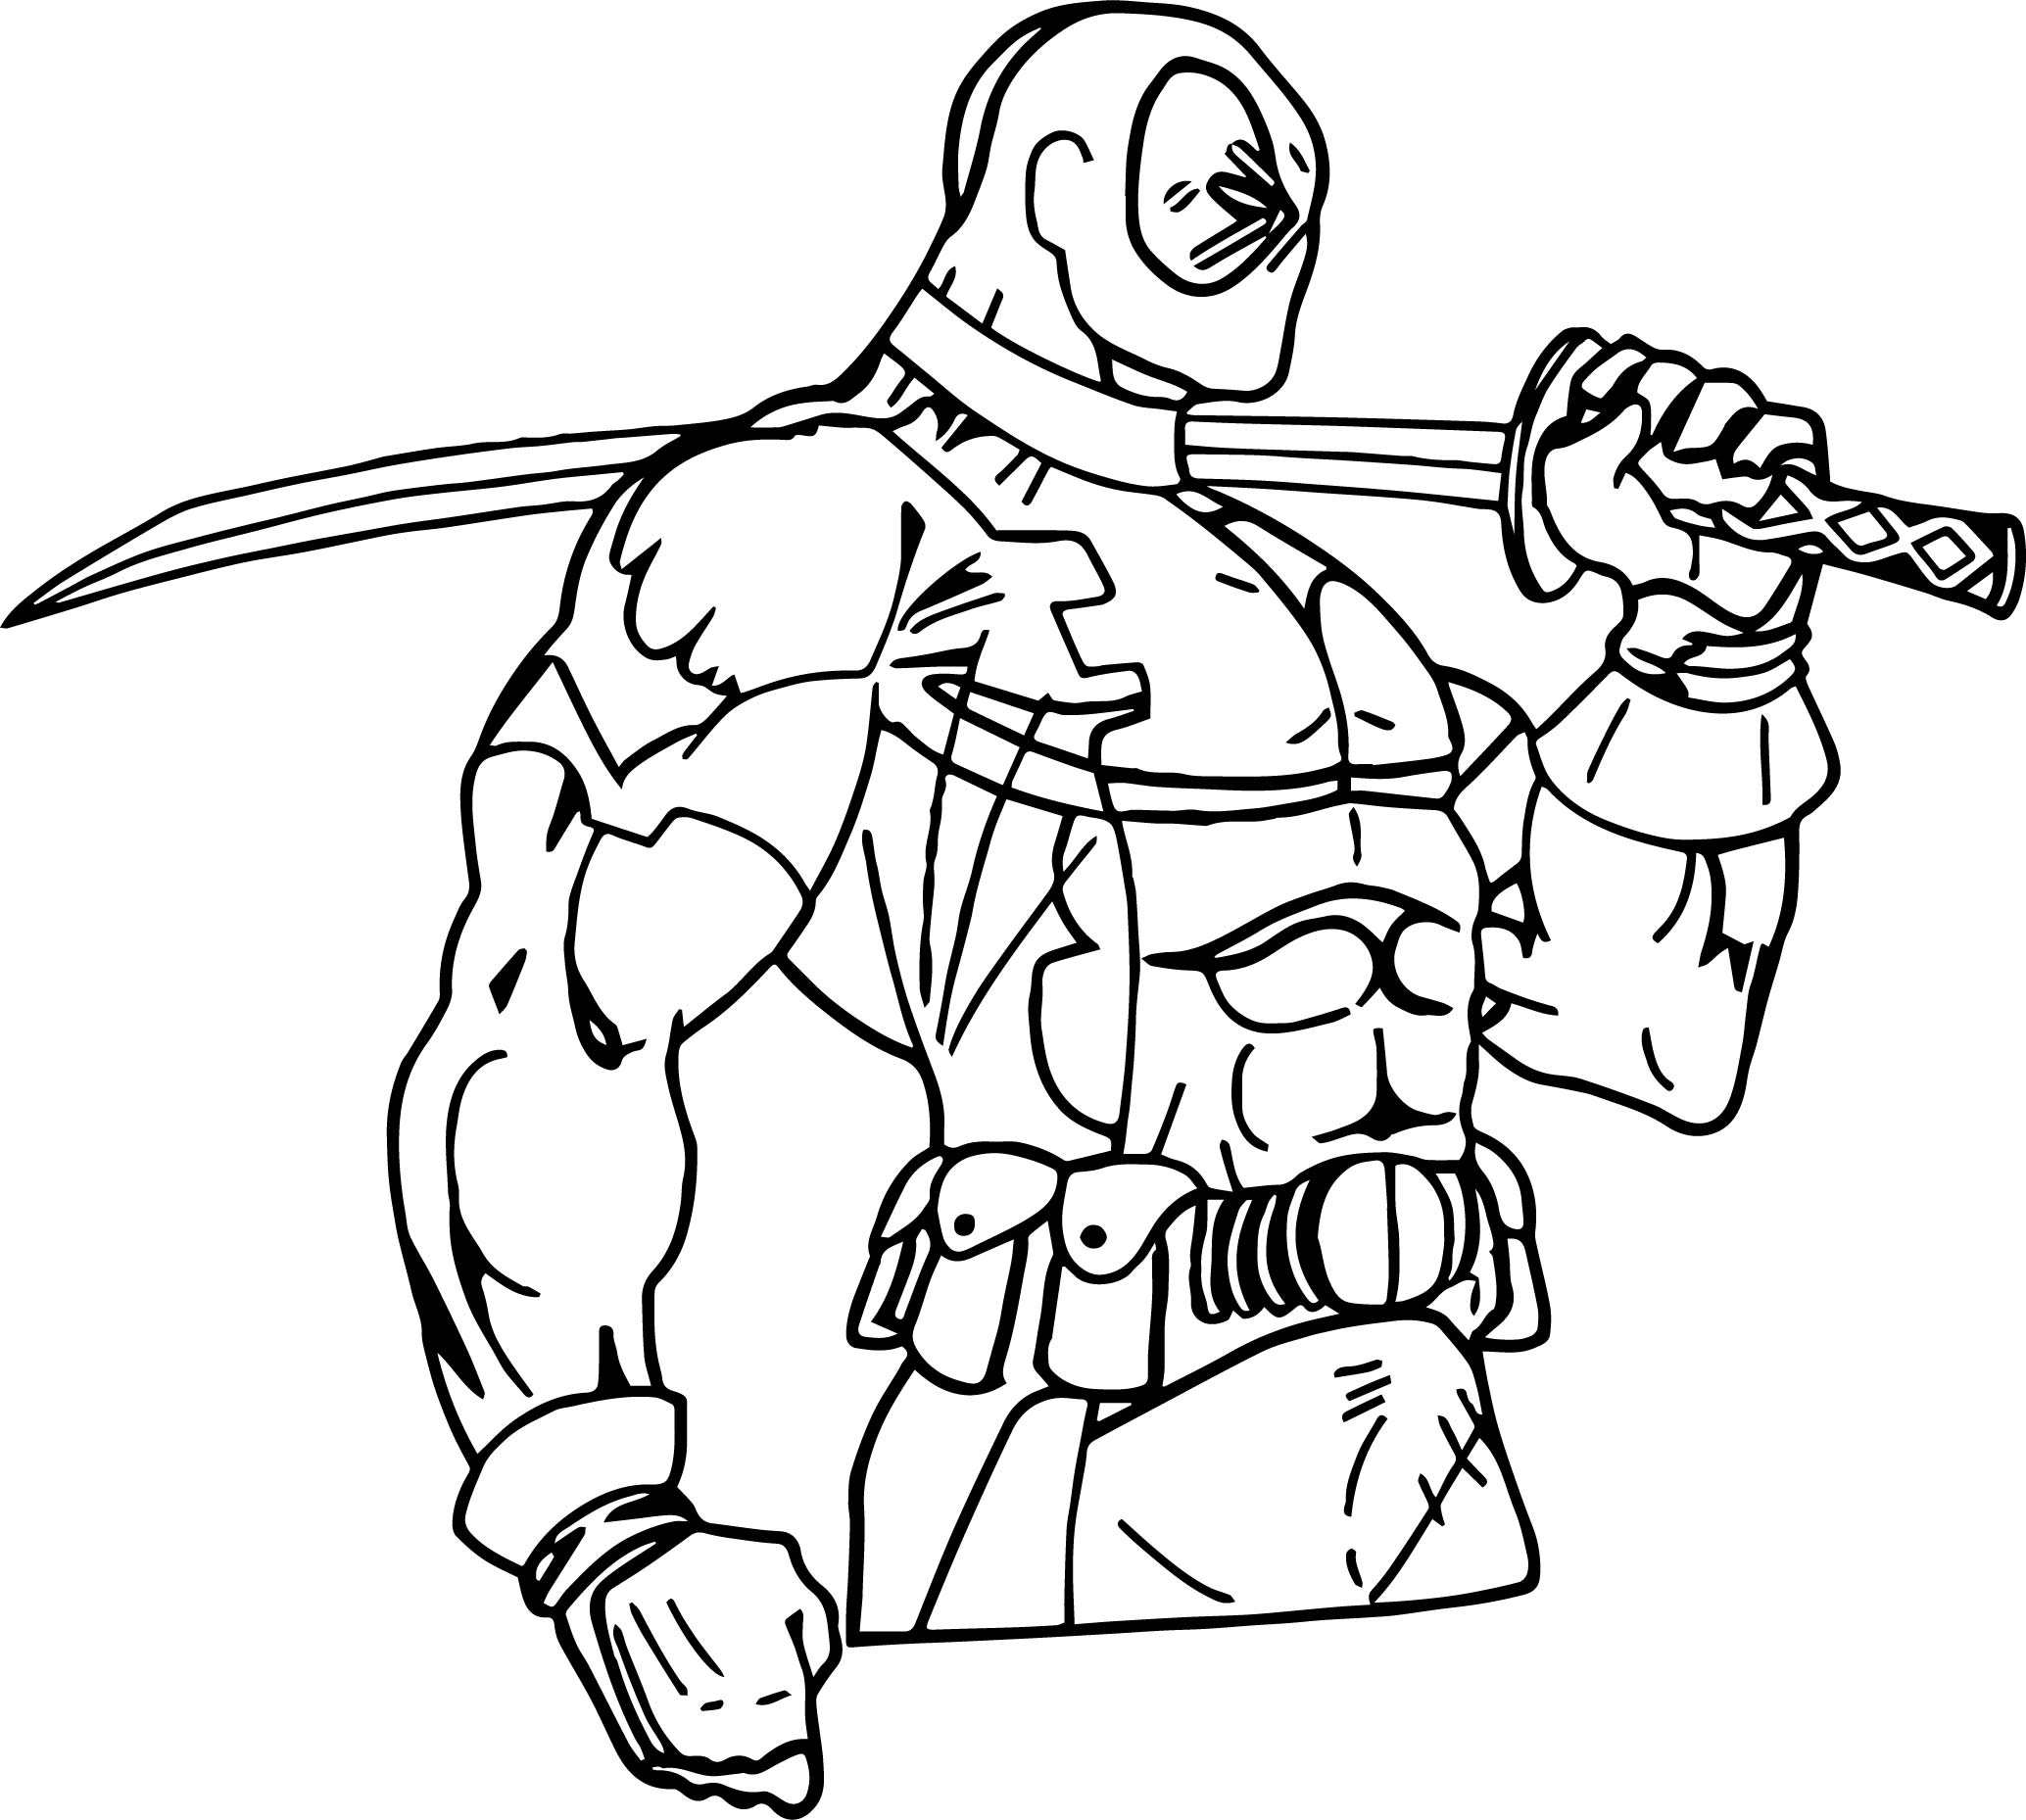 Deadpool Coloring Pages: Deadpool Side View Coloring Page